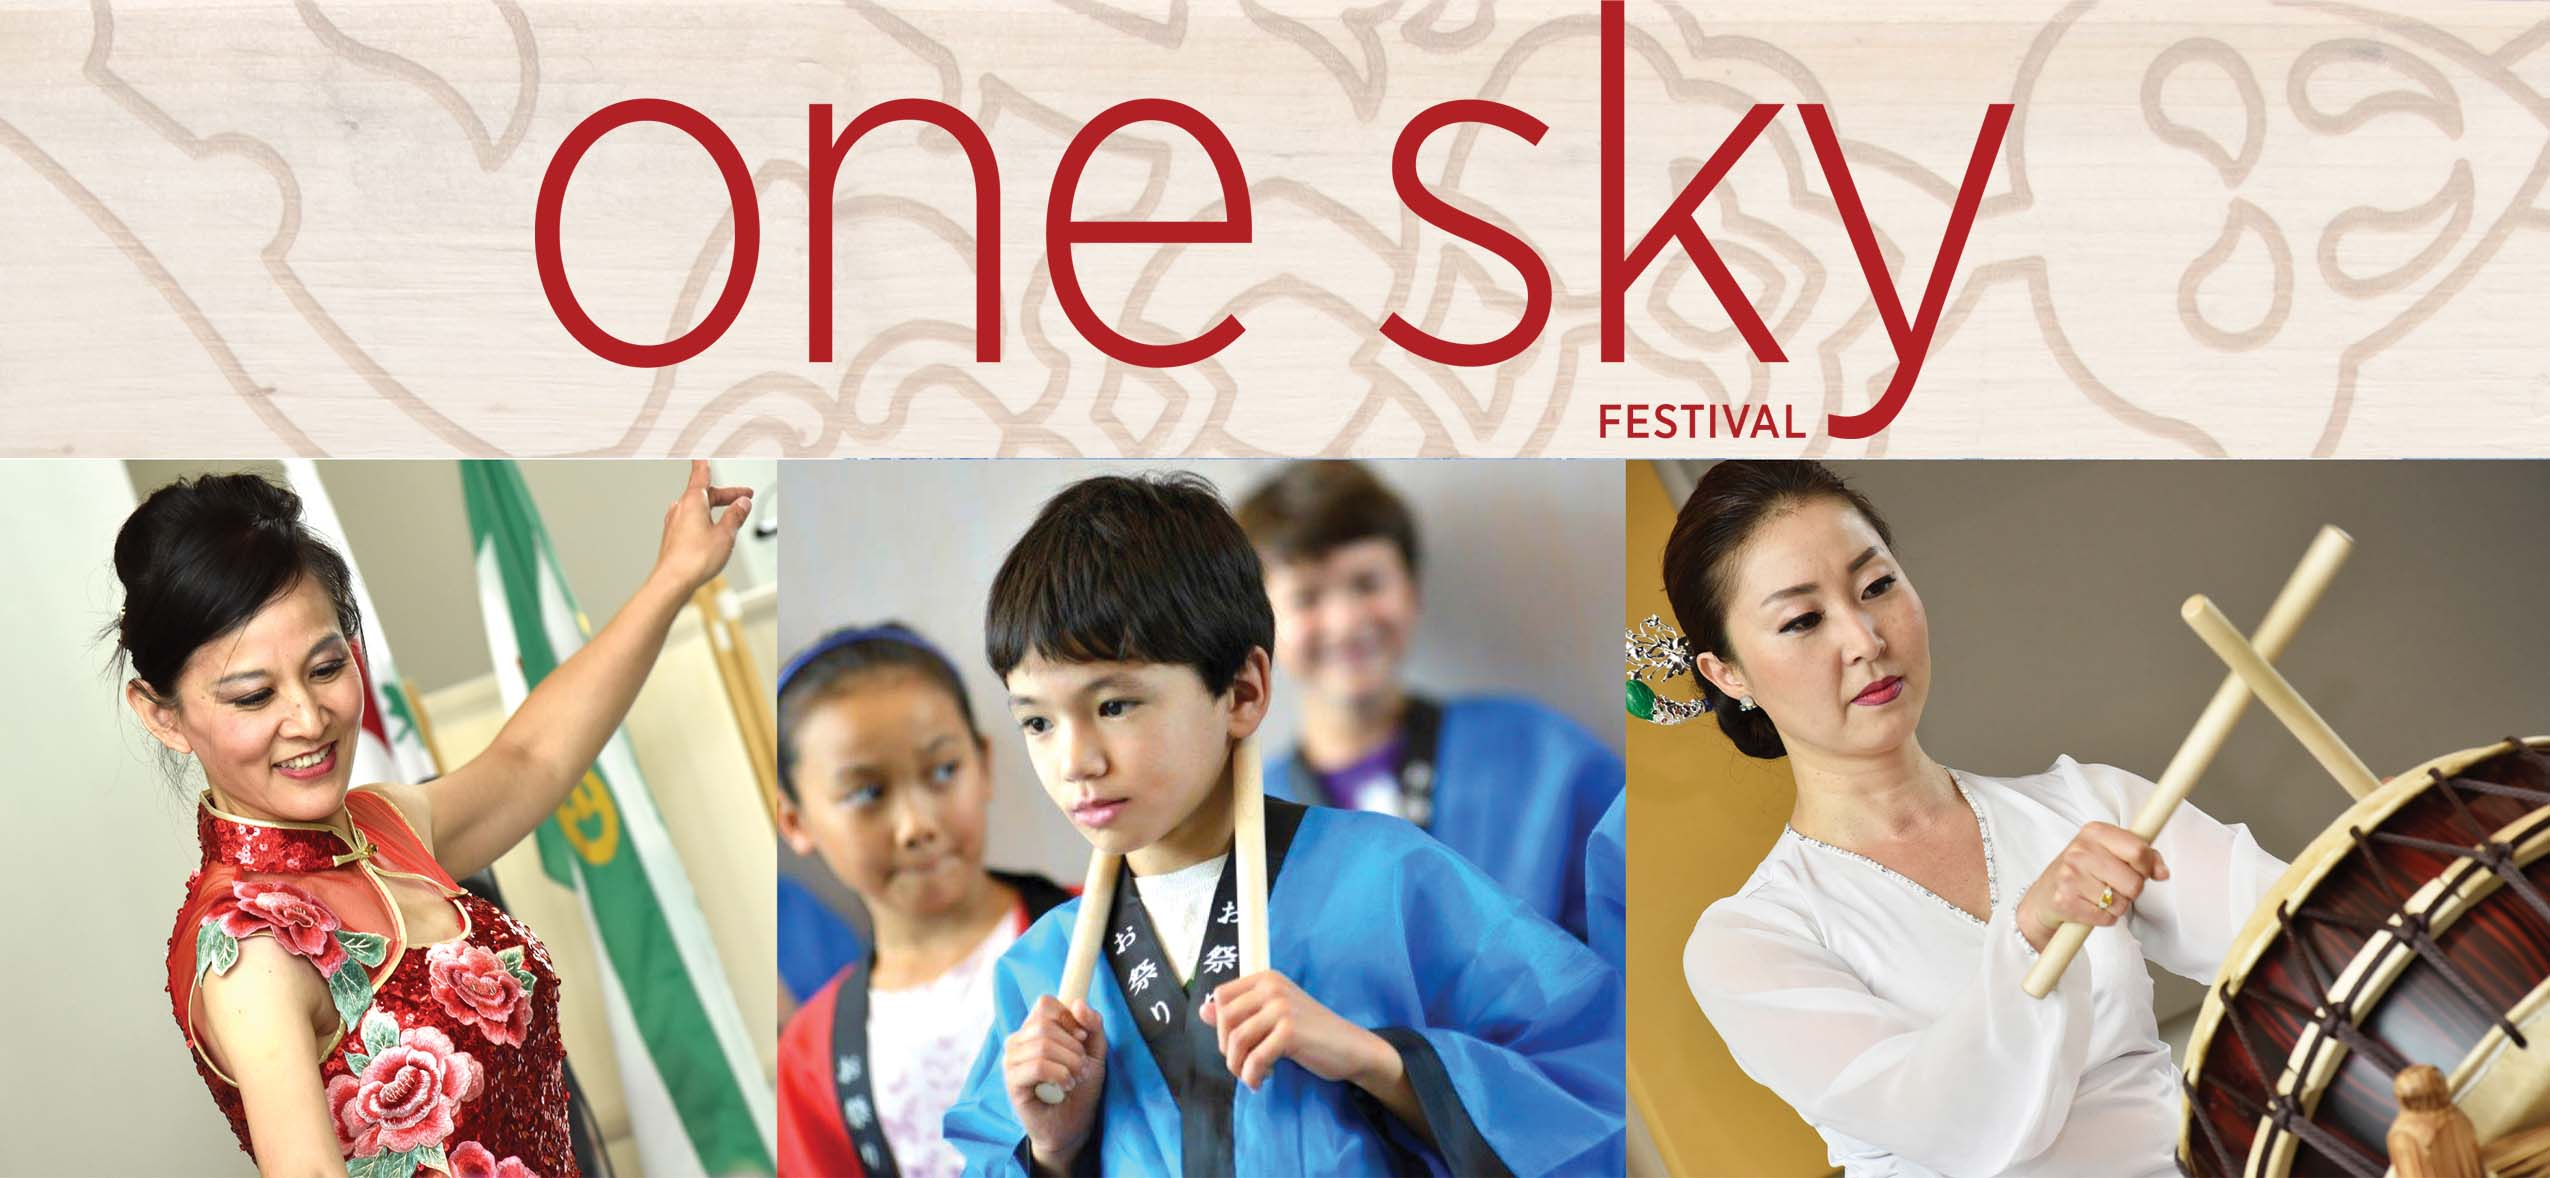 One Sky (photos of various performers)